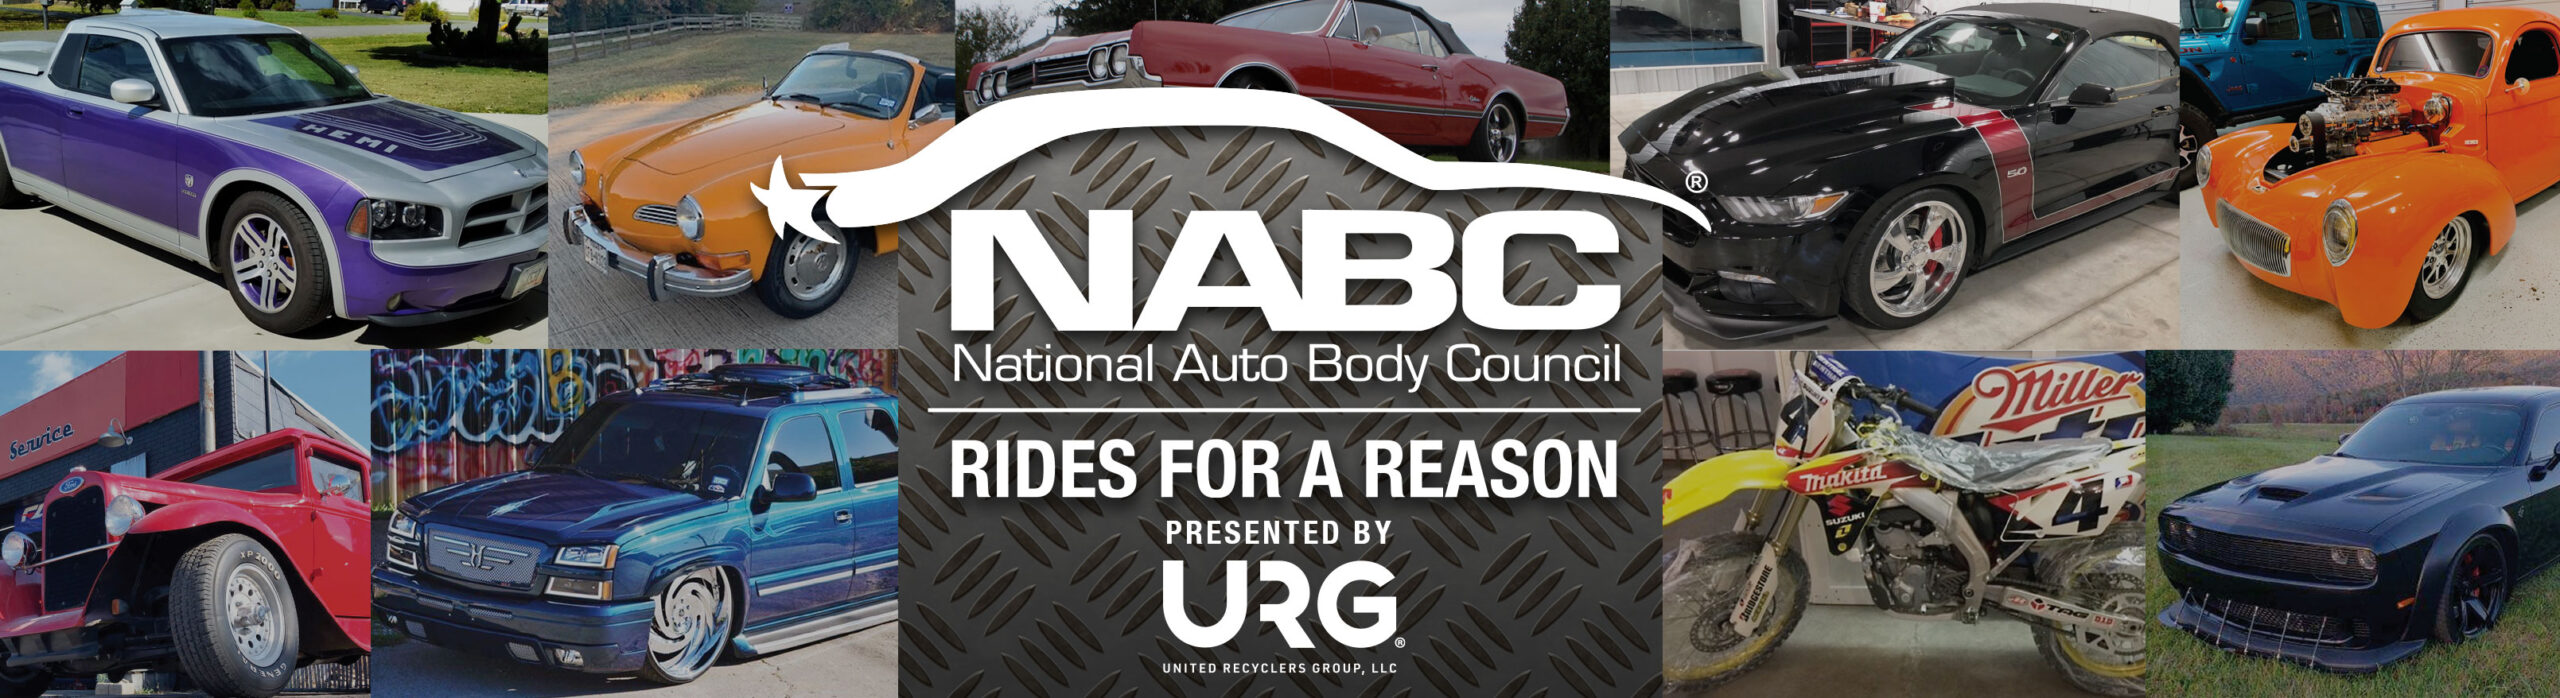 NABC Rides For A Reason Graphic